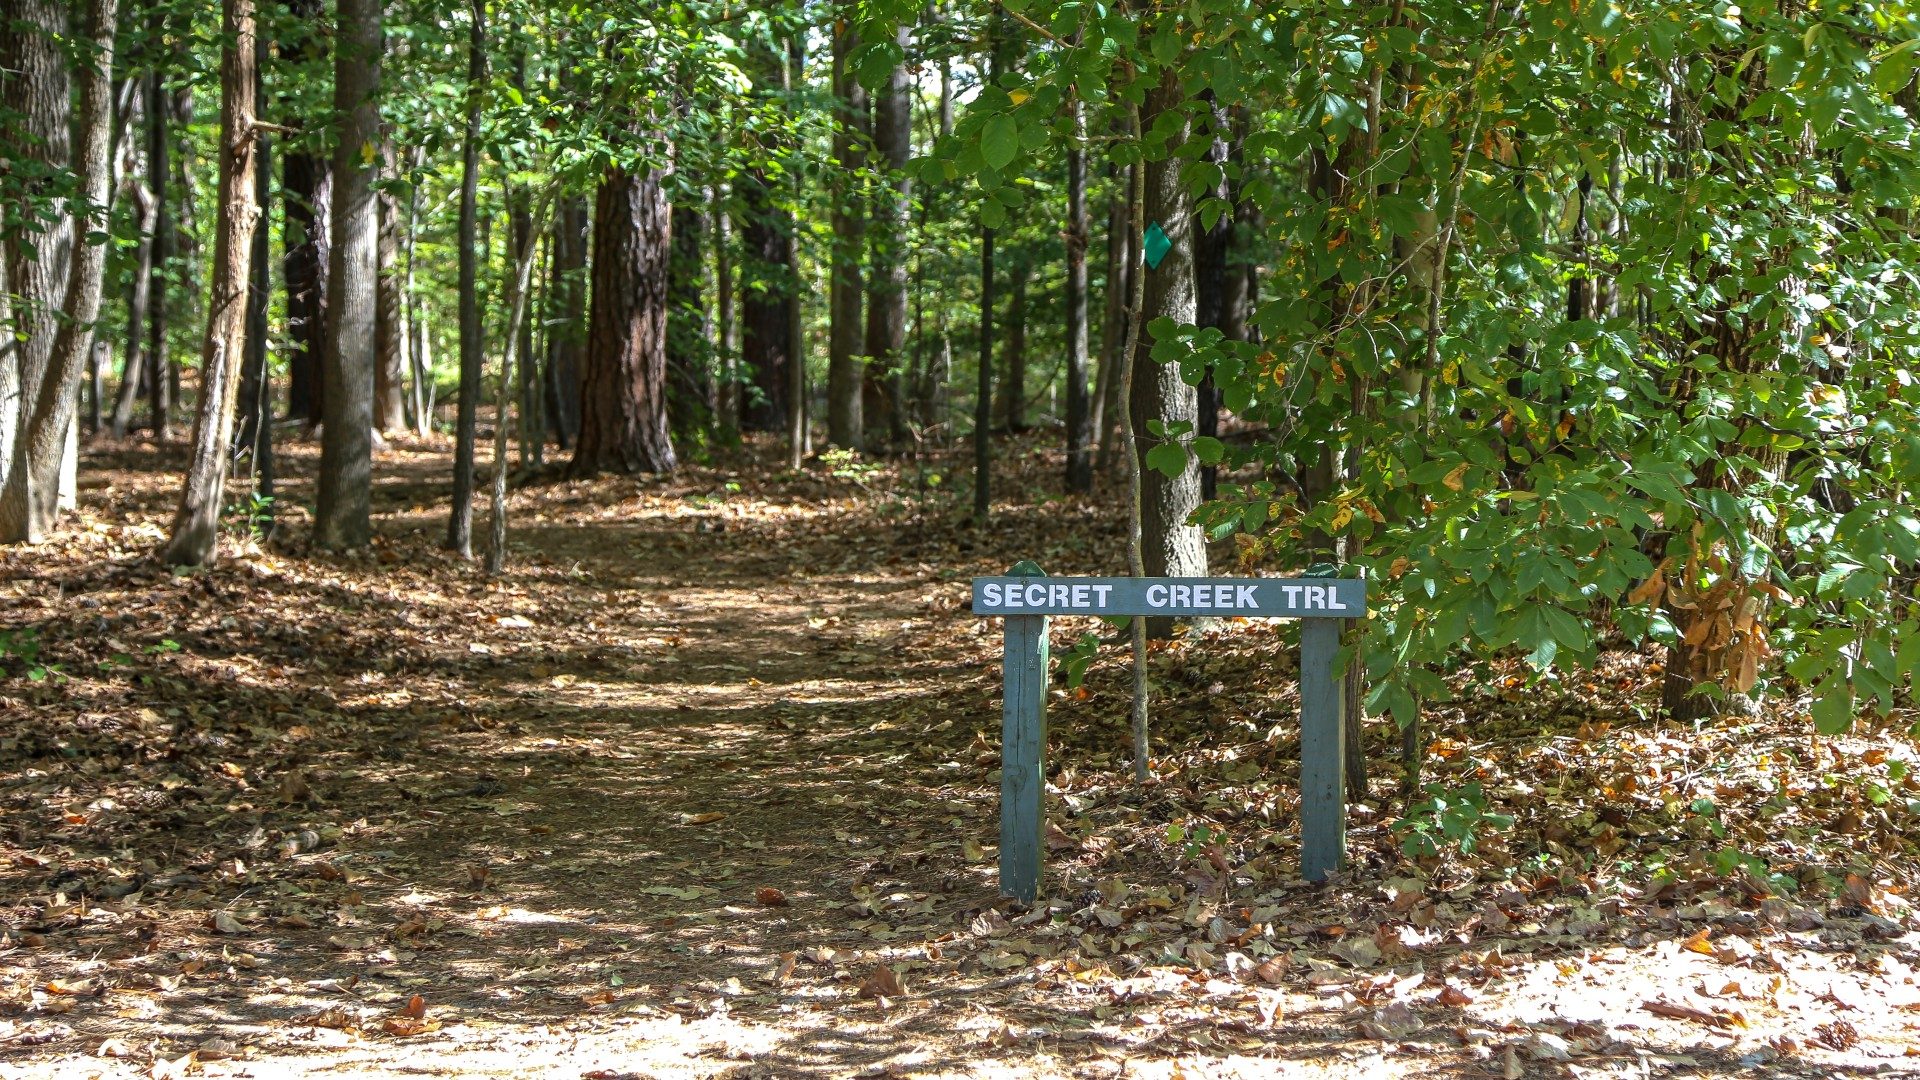 One of the many unpaved trails